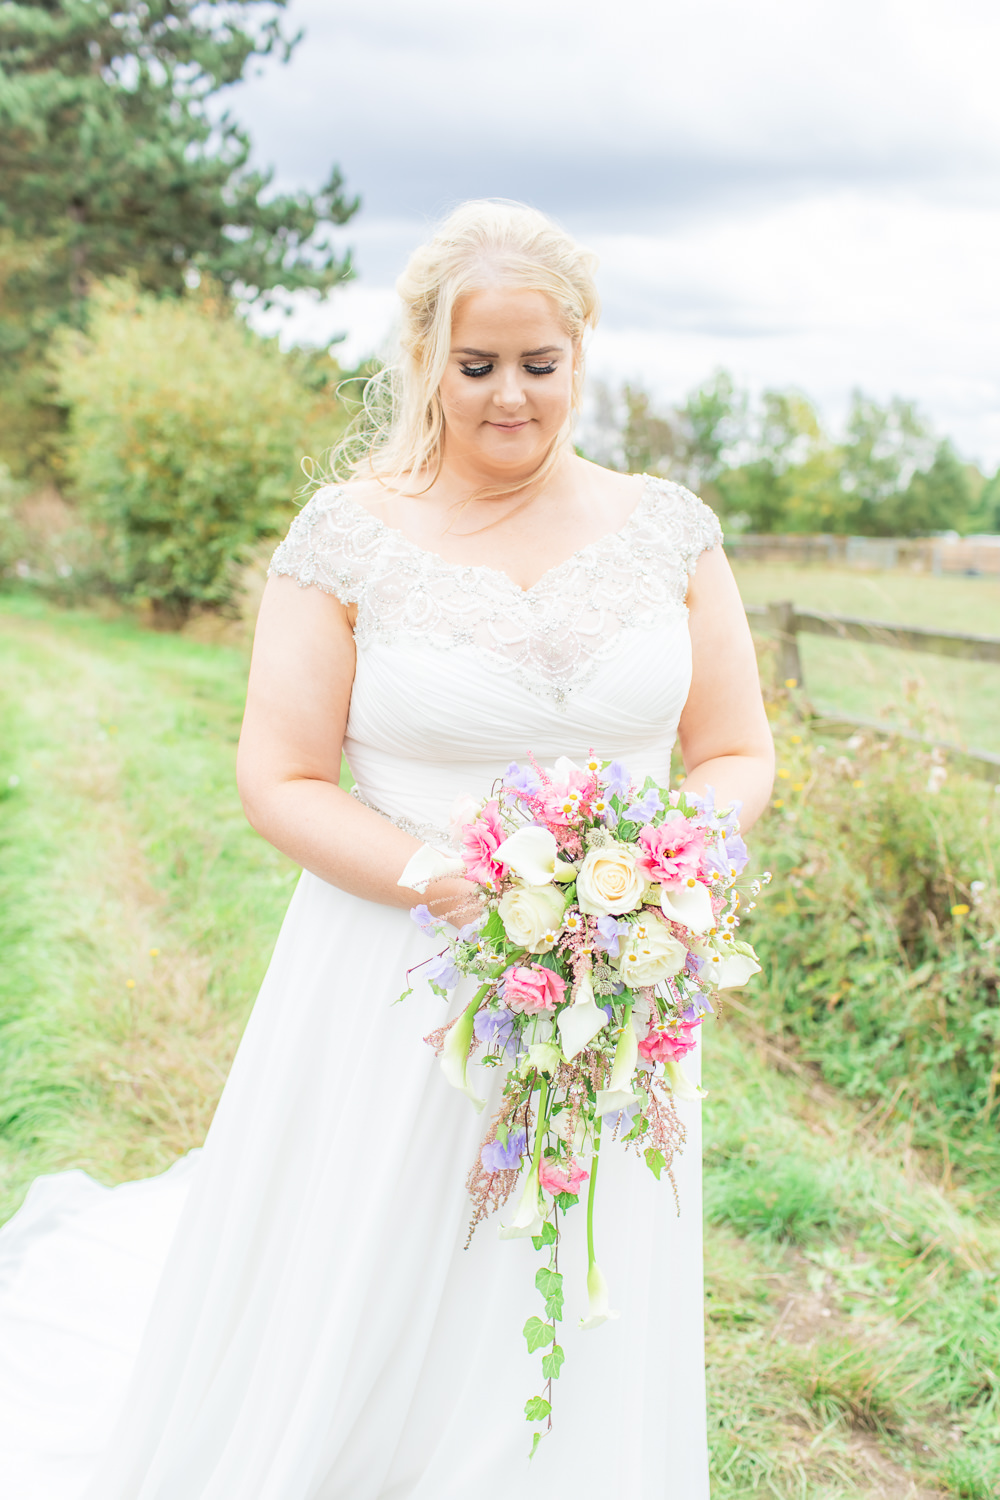 Bride Bridal Short Sleeve Lace V Neck Dress Gown Cascading Bouquet Waterfall Bedfordshire Tipi Wedding Natalie Stevenson Photography